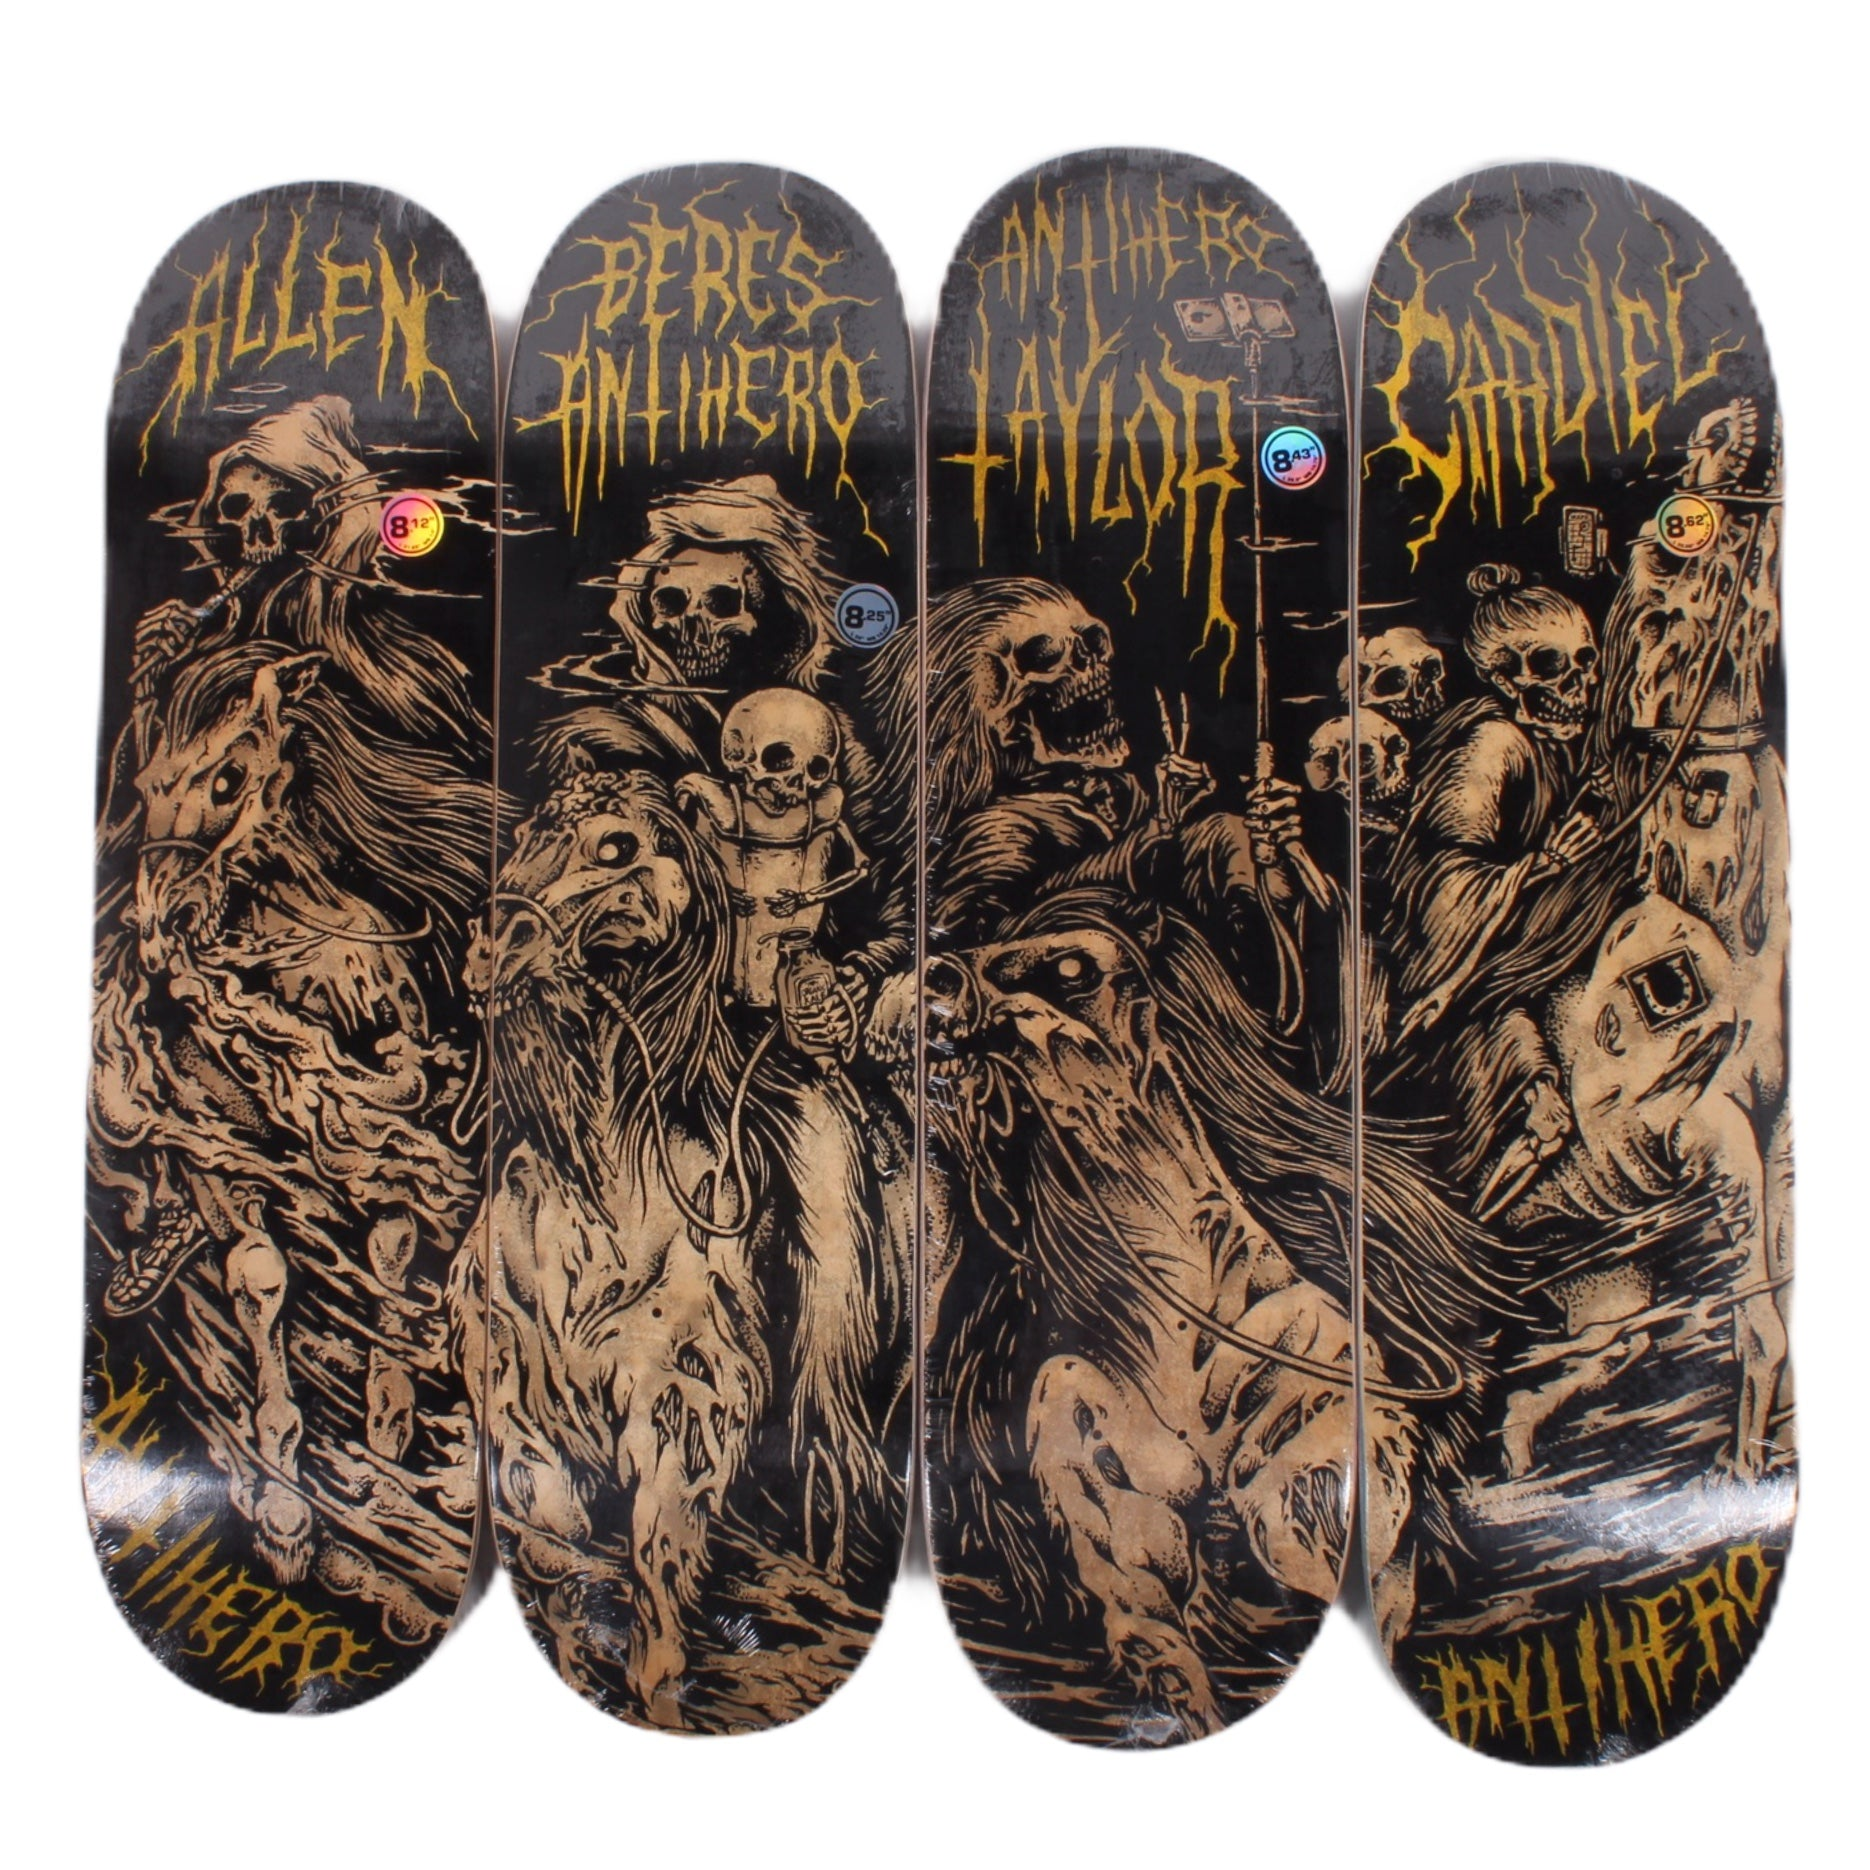 Overripe Anti Hero Set of 4 Decks Four Horsemen 2014